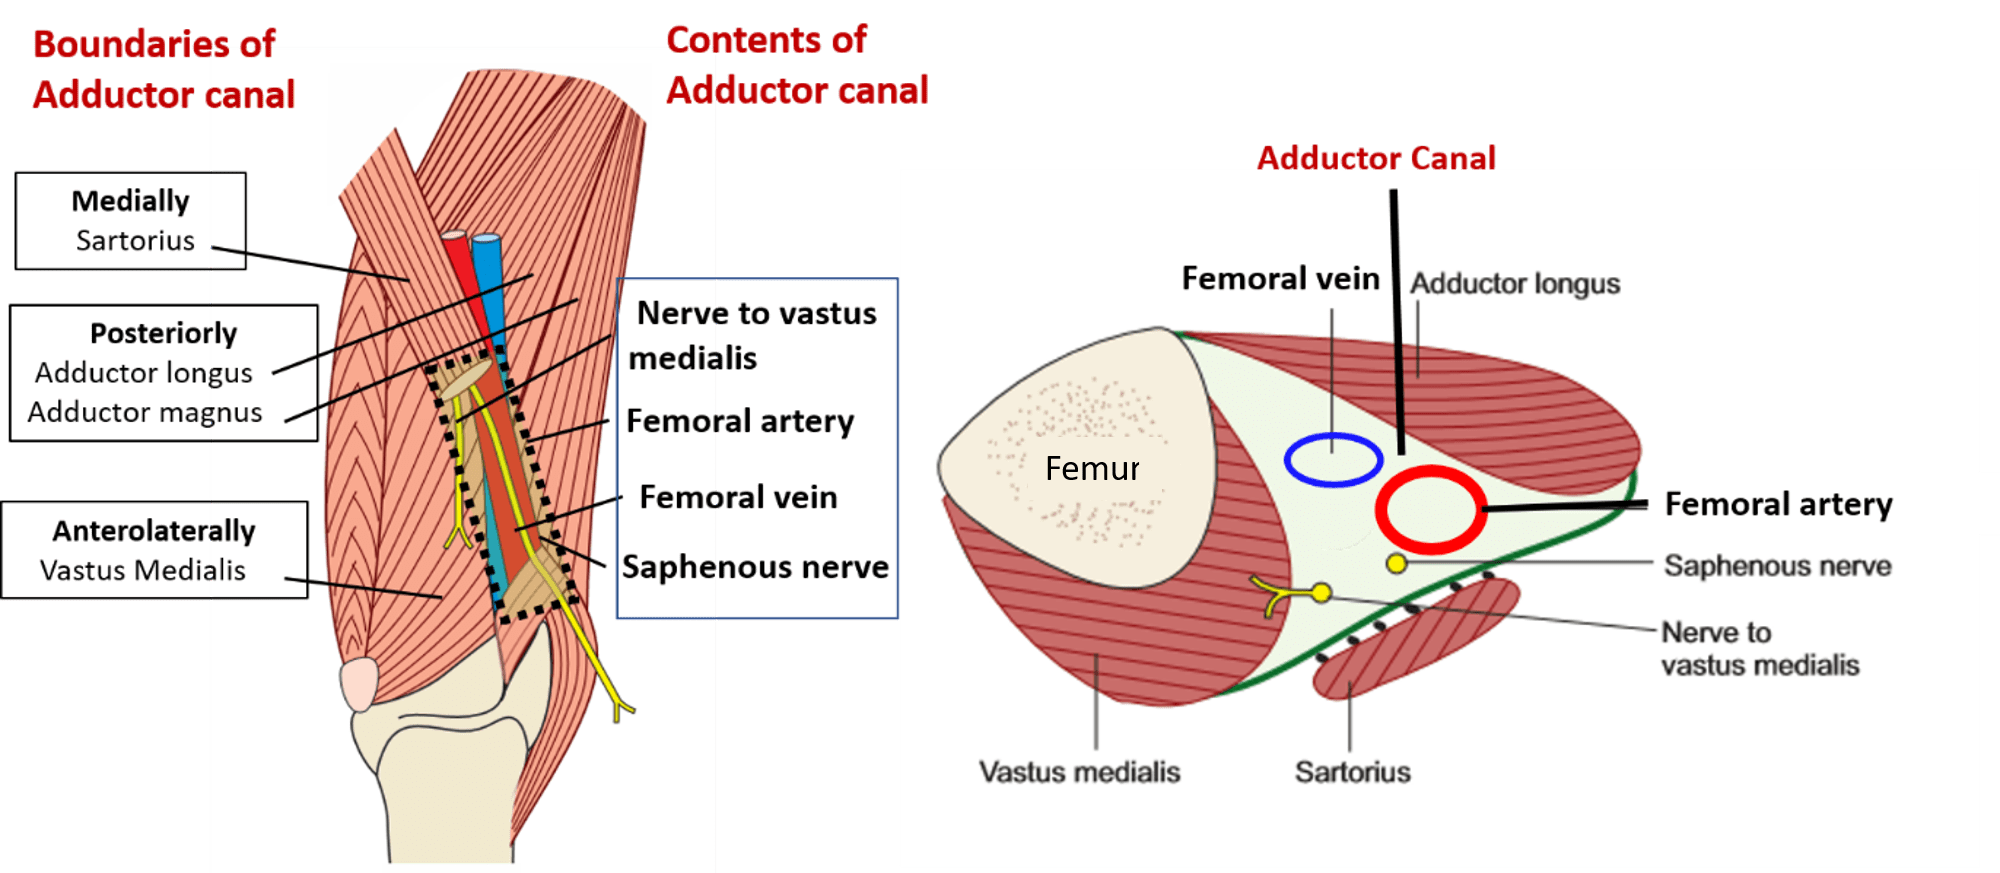 Adductor canal - Hunter\'s canal - boundaries and contents -